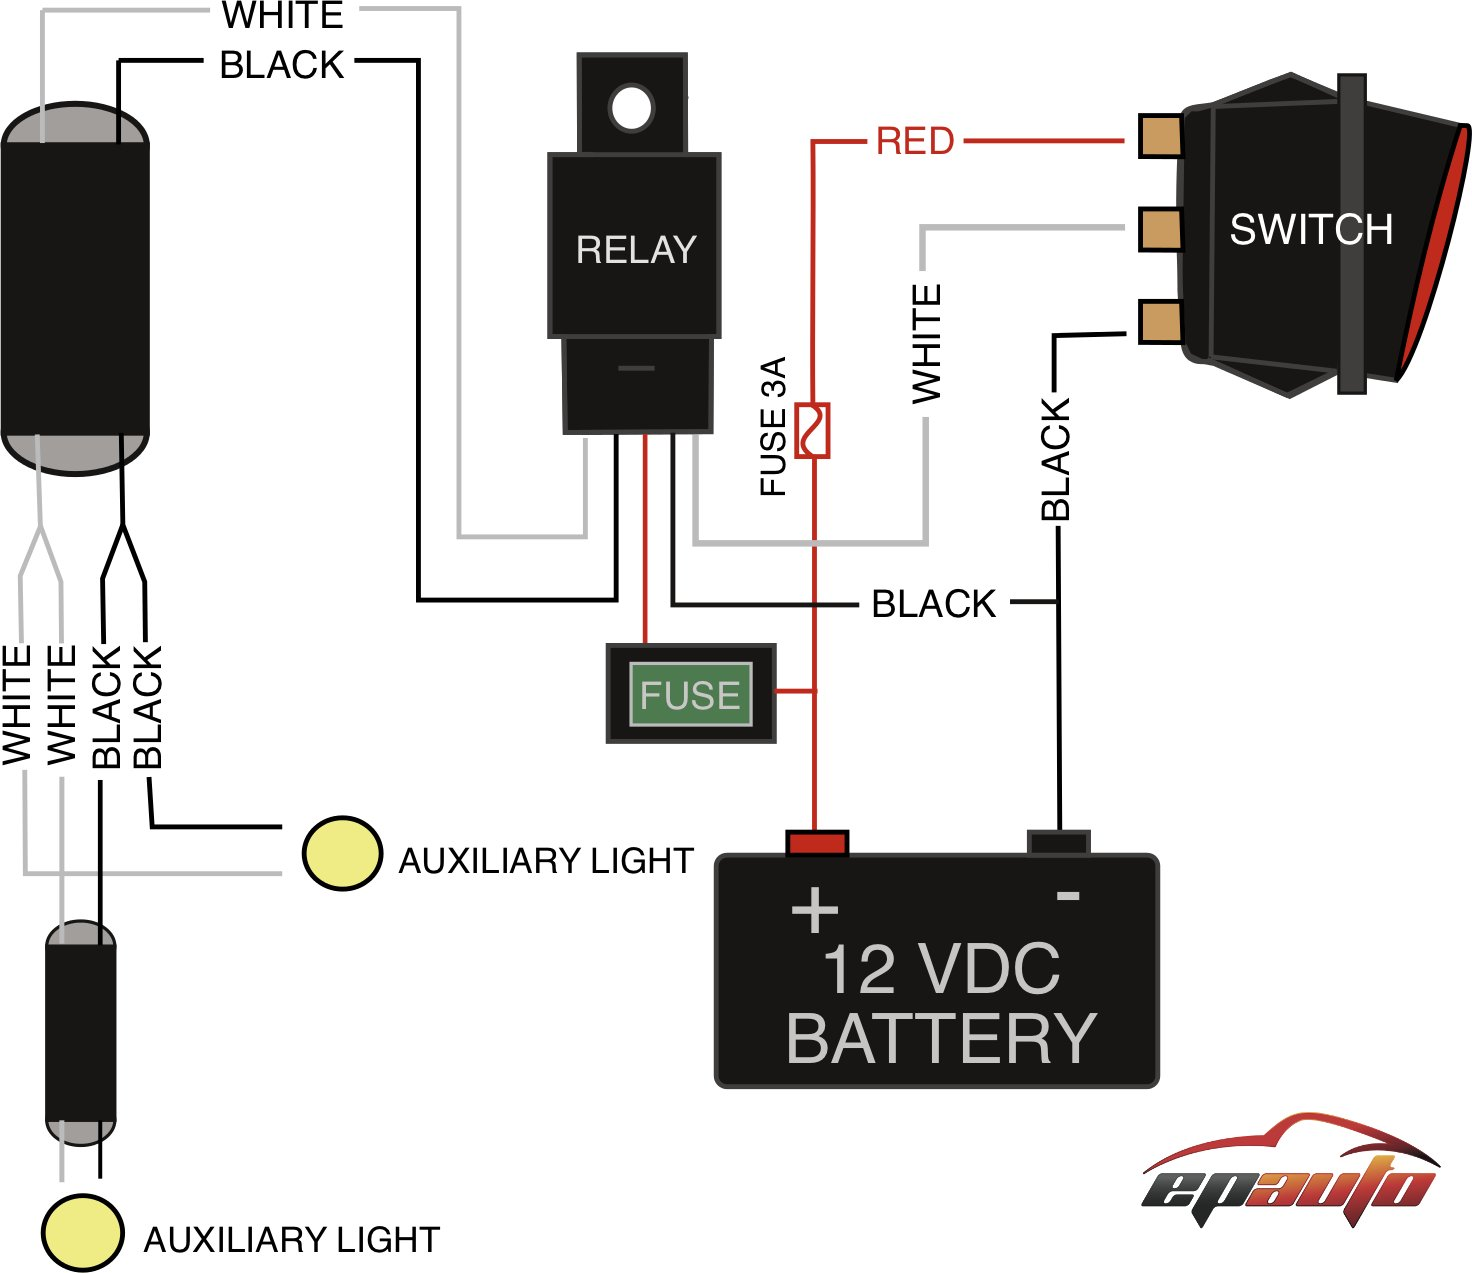 Inline Fuel Pump Wiring Diagram Simple Guide About Electric Schematic Led Light Bar Harness Stream Relay